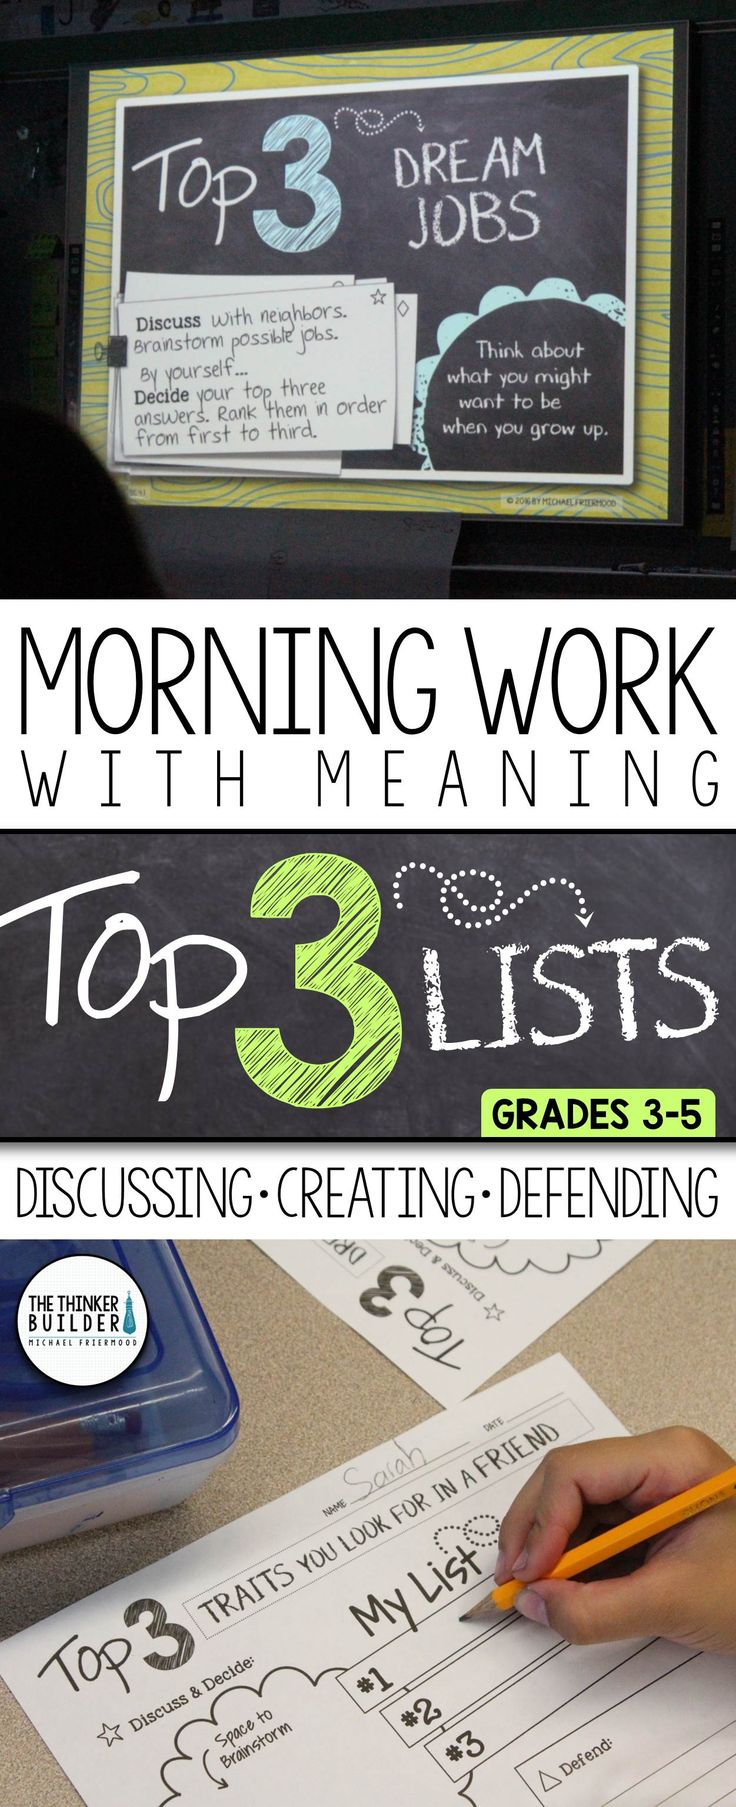 "Put some meaningful morning work into your daily routine with these ""Top 3 List"" activities! Get students discussing engaging topics, creating lists, defending their choices, and analyzing their own and others' decisions. 30 week-long topics"